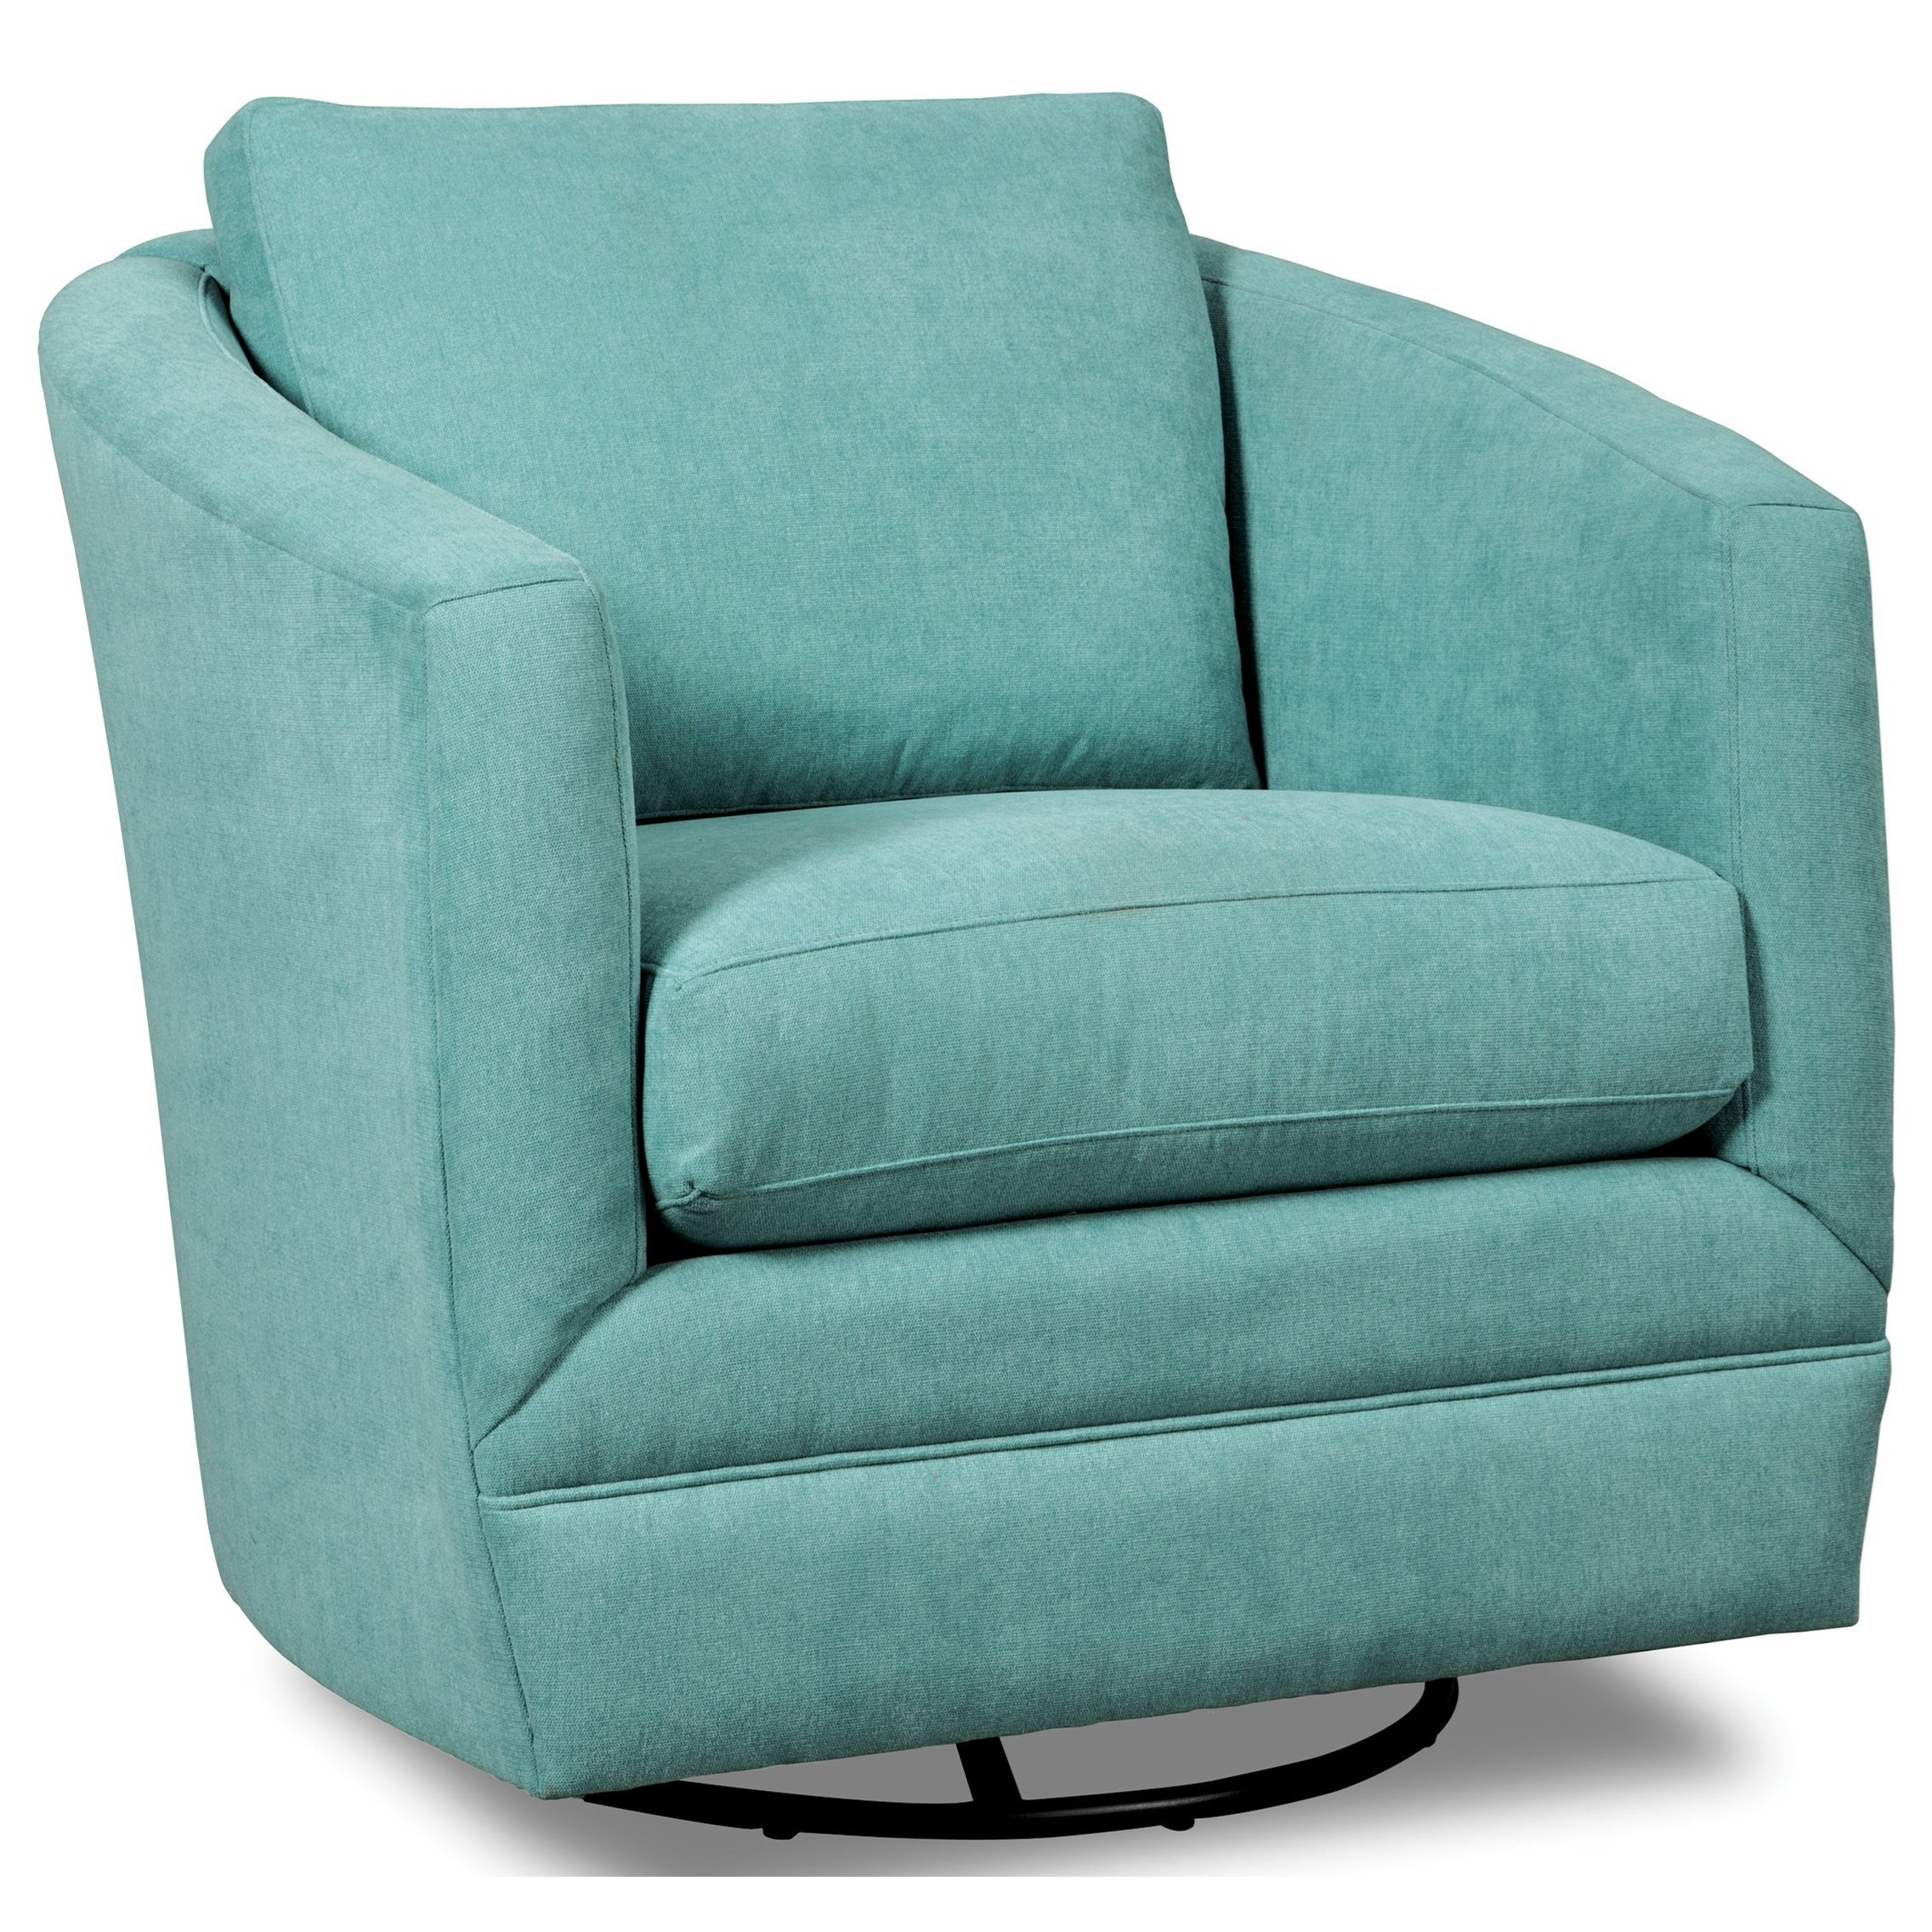 Accent Chairs Swivel Chair by Craftmaster at Baer's Furniture